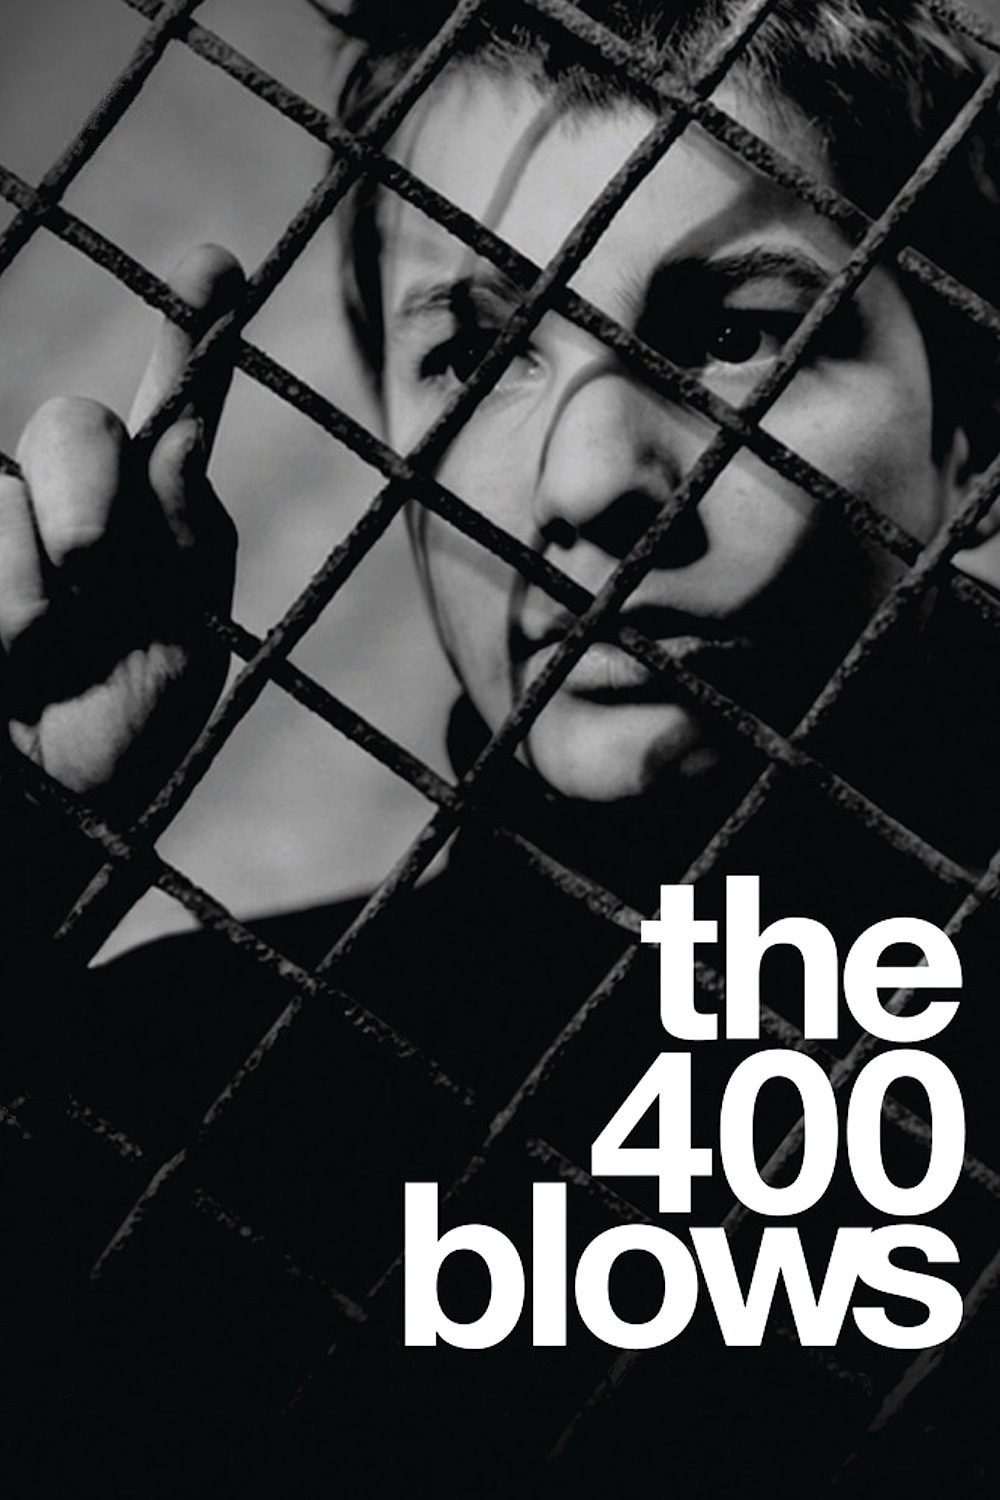 Poster for The 400 Blows